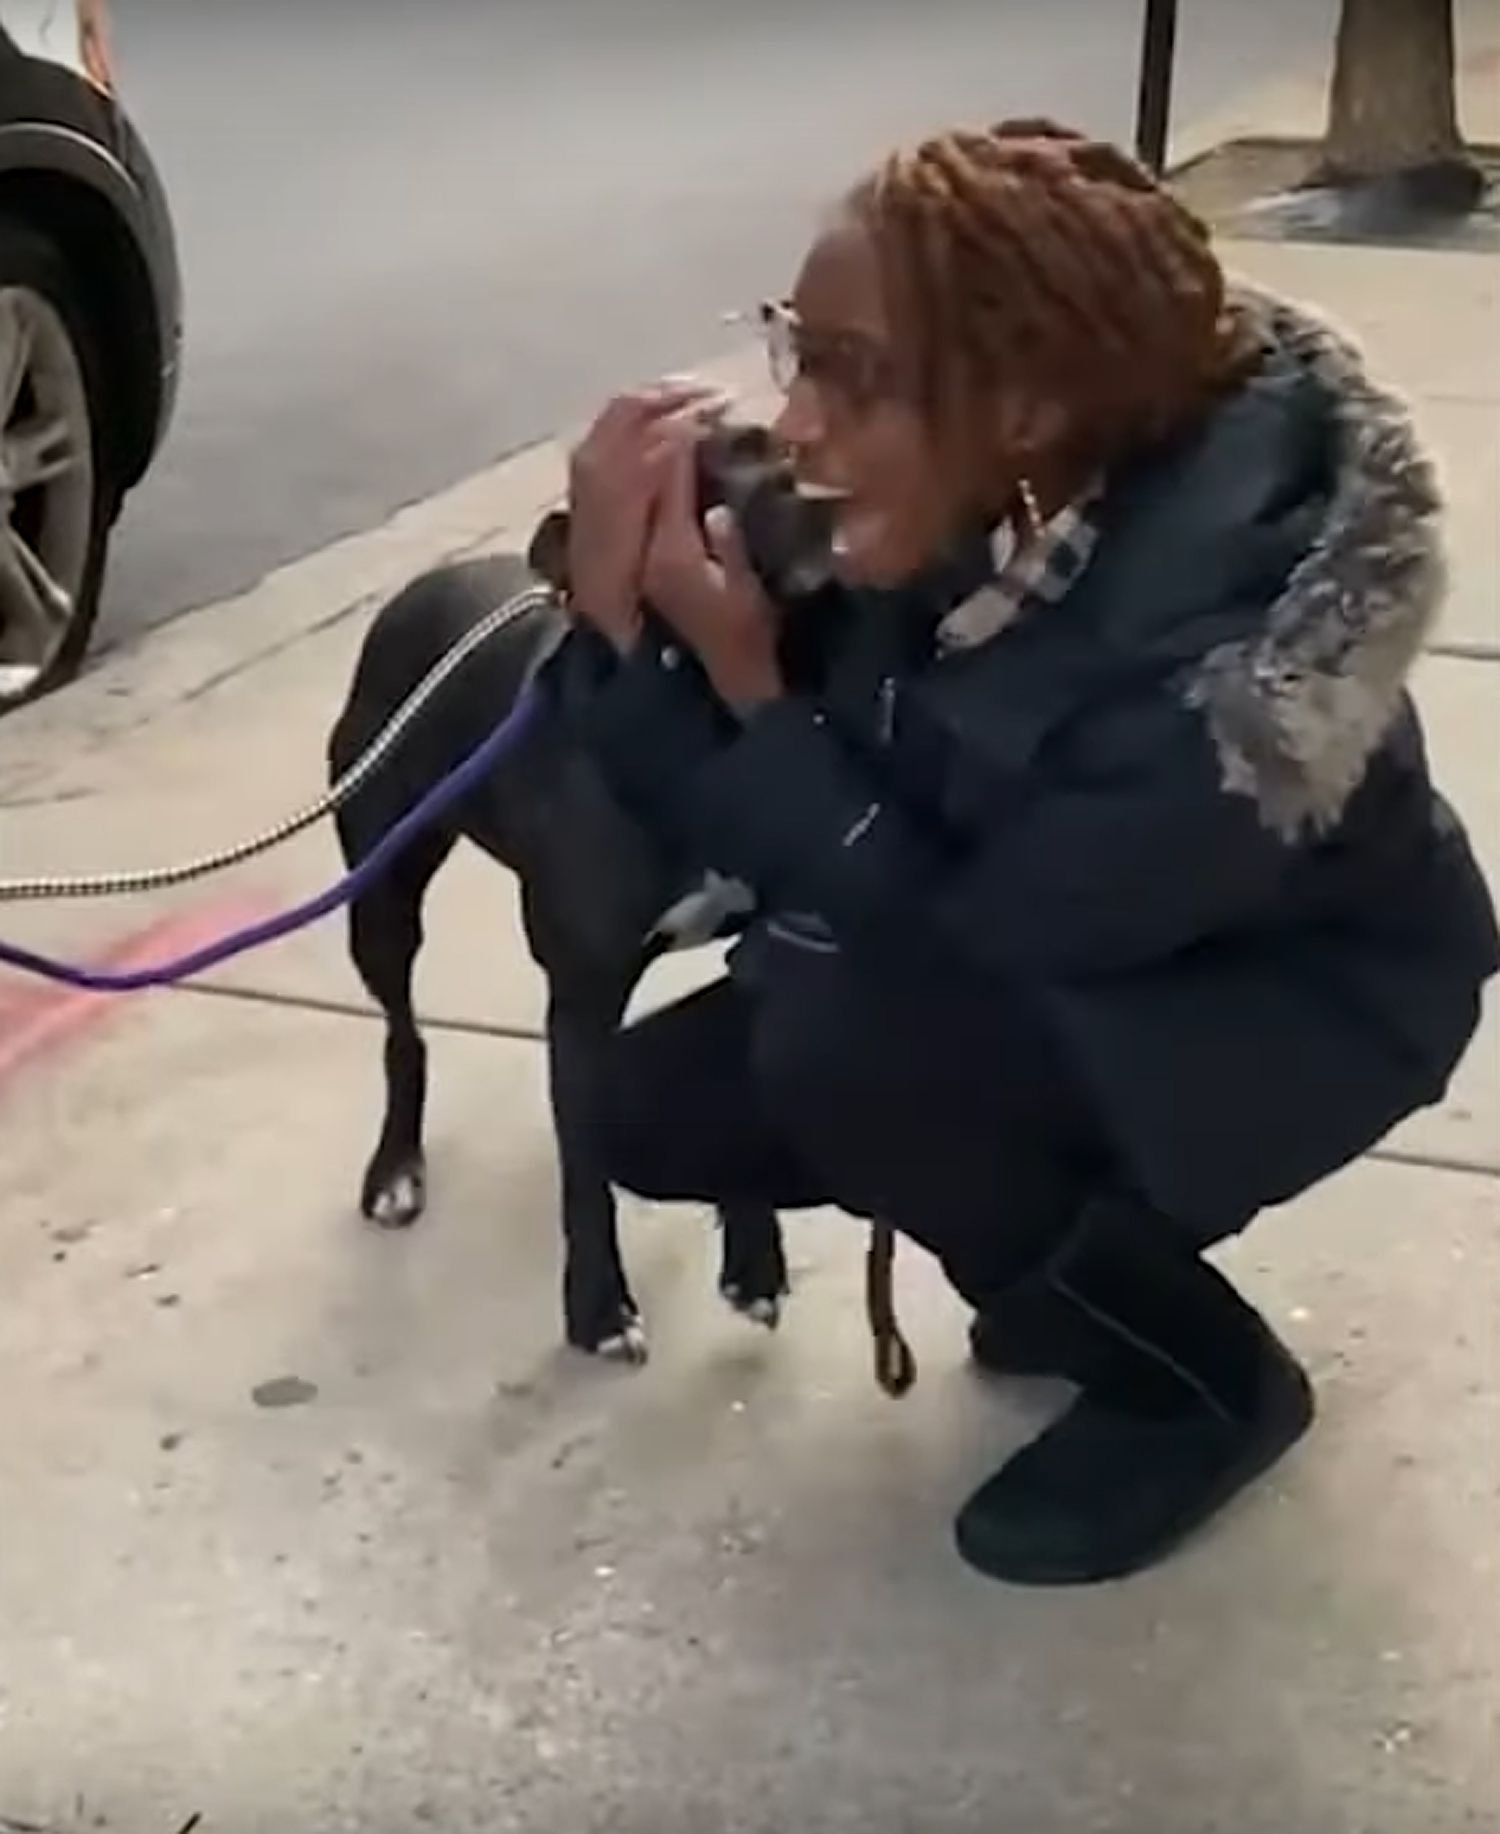 Lost Pit Bull Reunites with Illinois Family Nearly 1 Year After Going Missing: 'A Holiday Miracle'